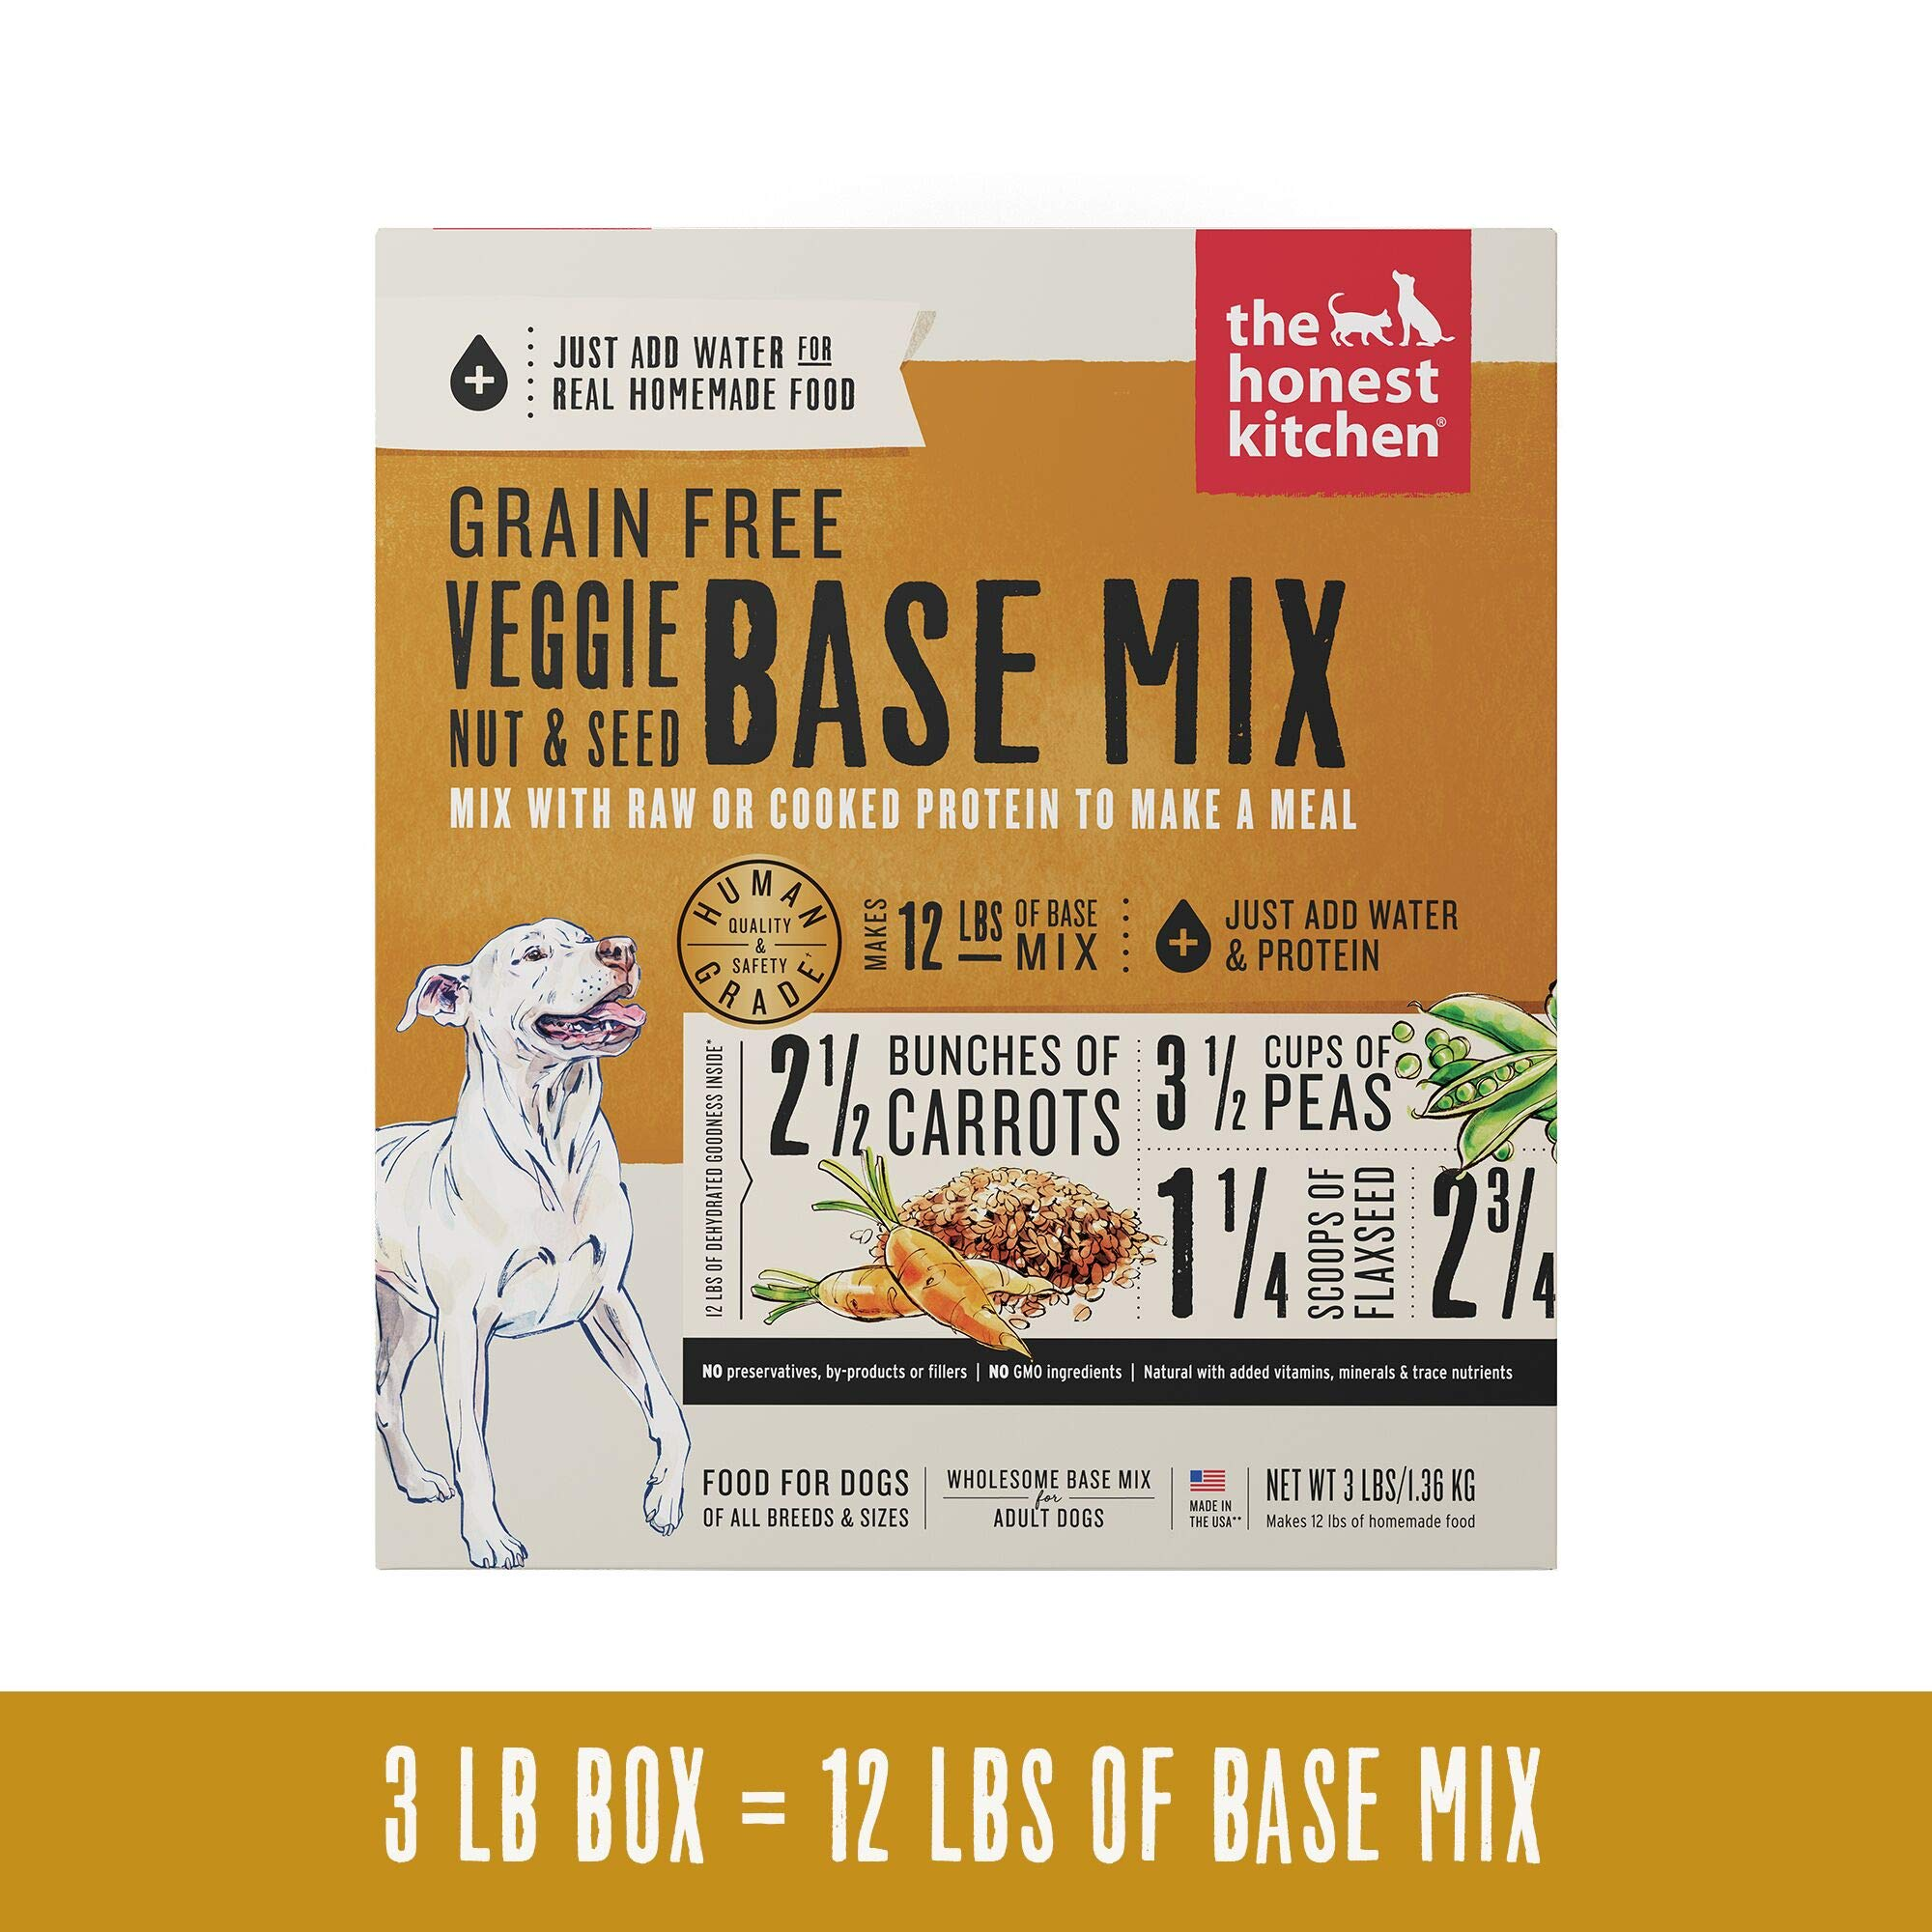 The Honest Kitchen Grain Free Veggie, Nut & Seed Base Mix Recipe for Dogs, 3lb box by Honest Kitchen